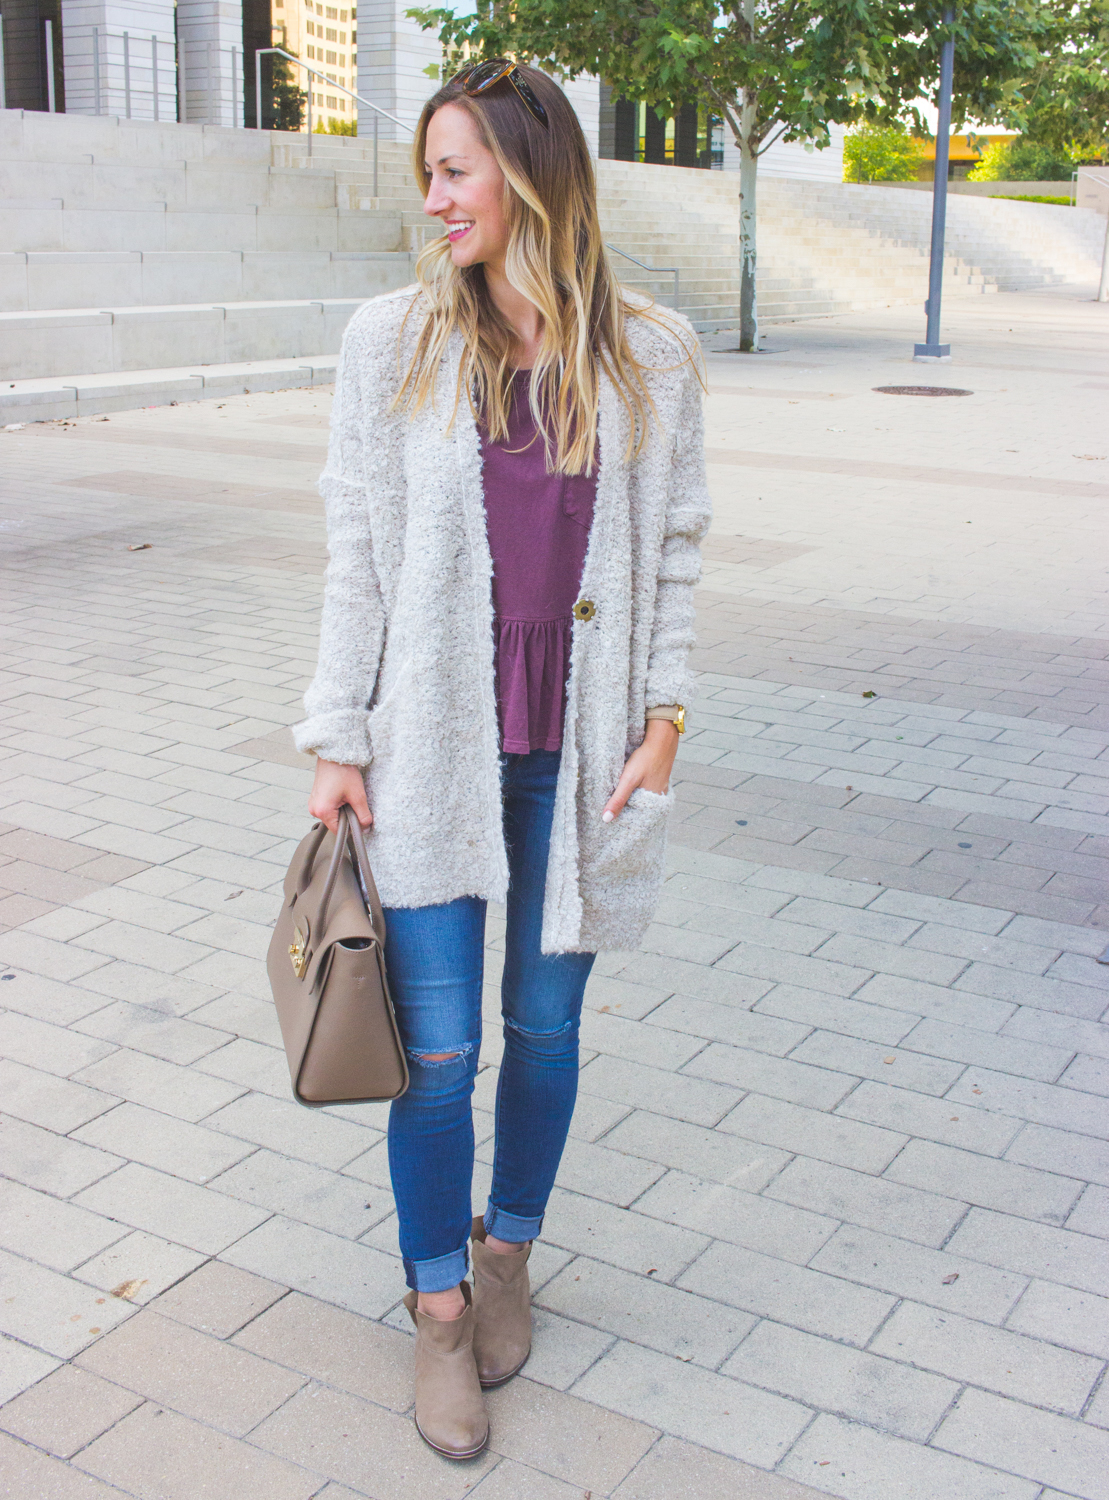 livvyland-blog-olivia-watson-cozy-fall-outfit-grandpa-oversize-cardigan-sweater-seychelles-snare-booties-5